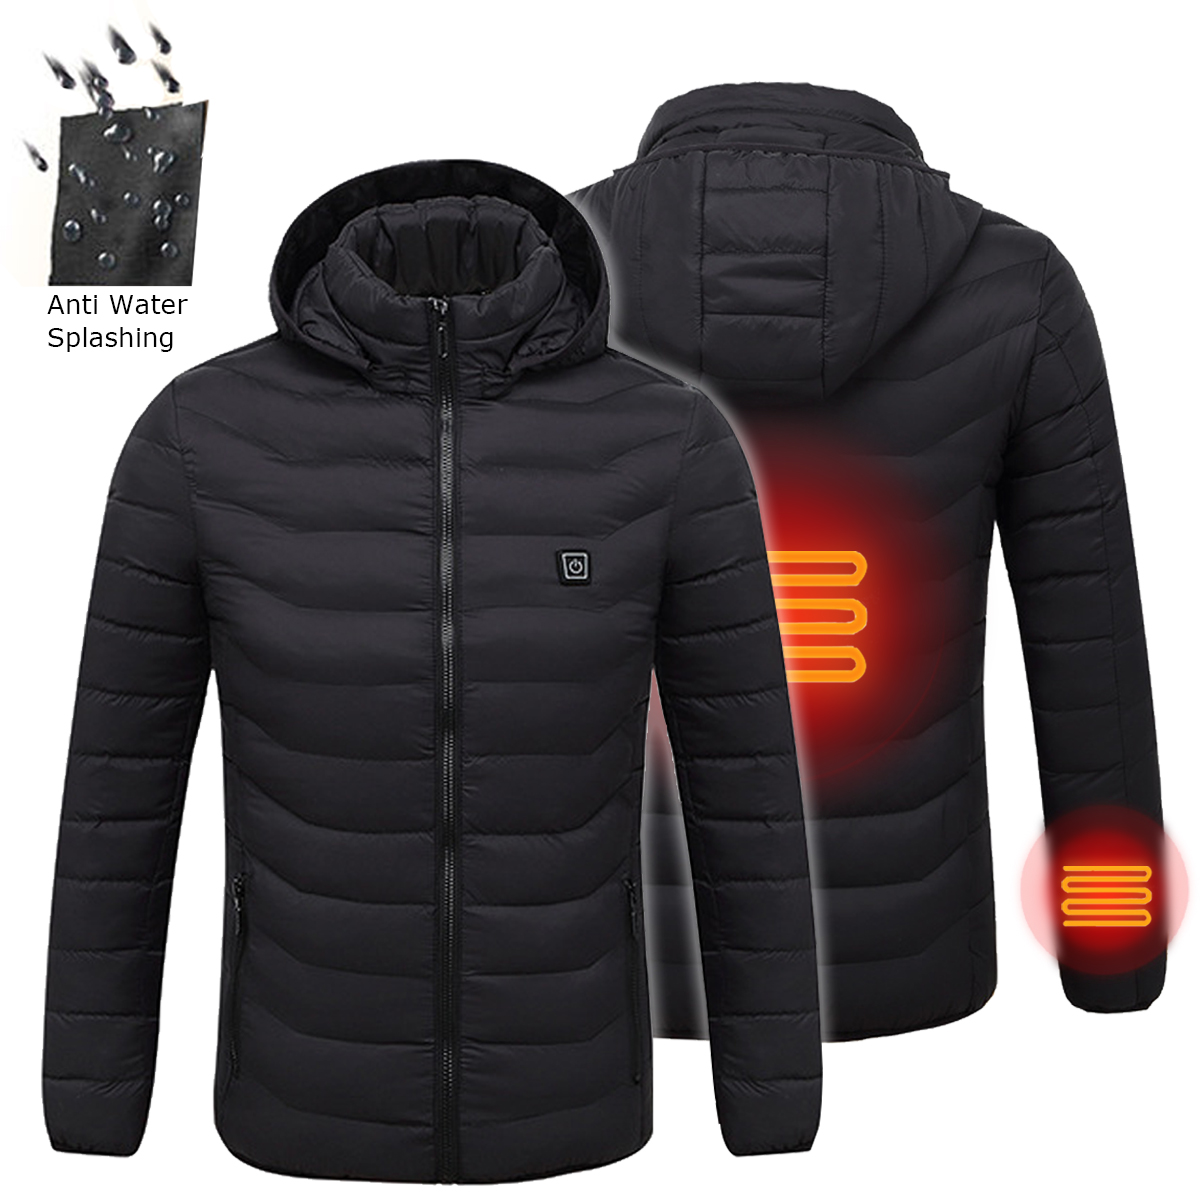 NEW Universal Winter Heated USB Hooded Work